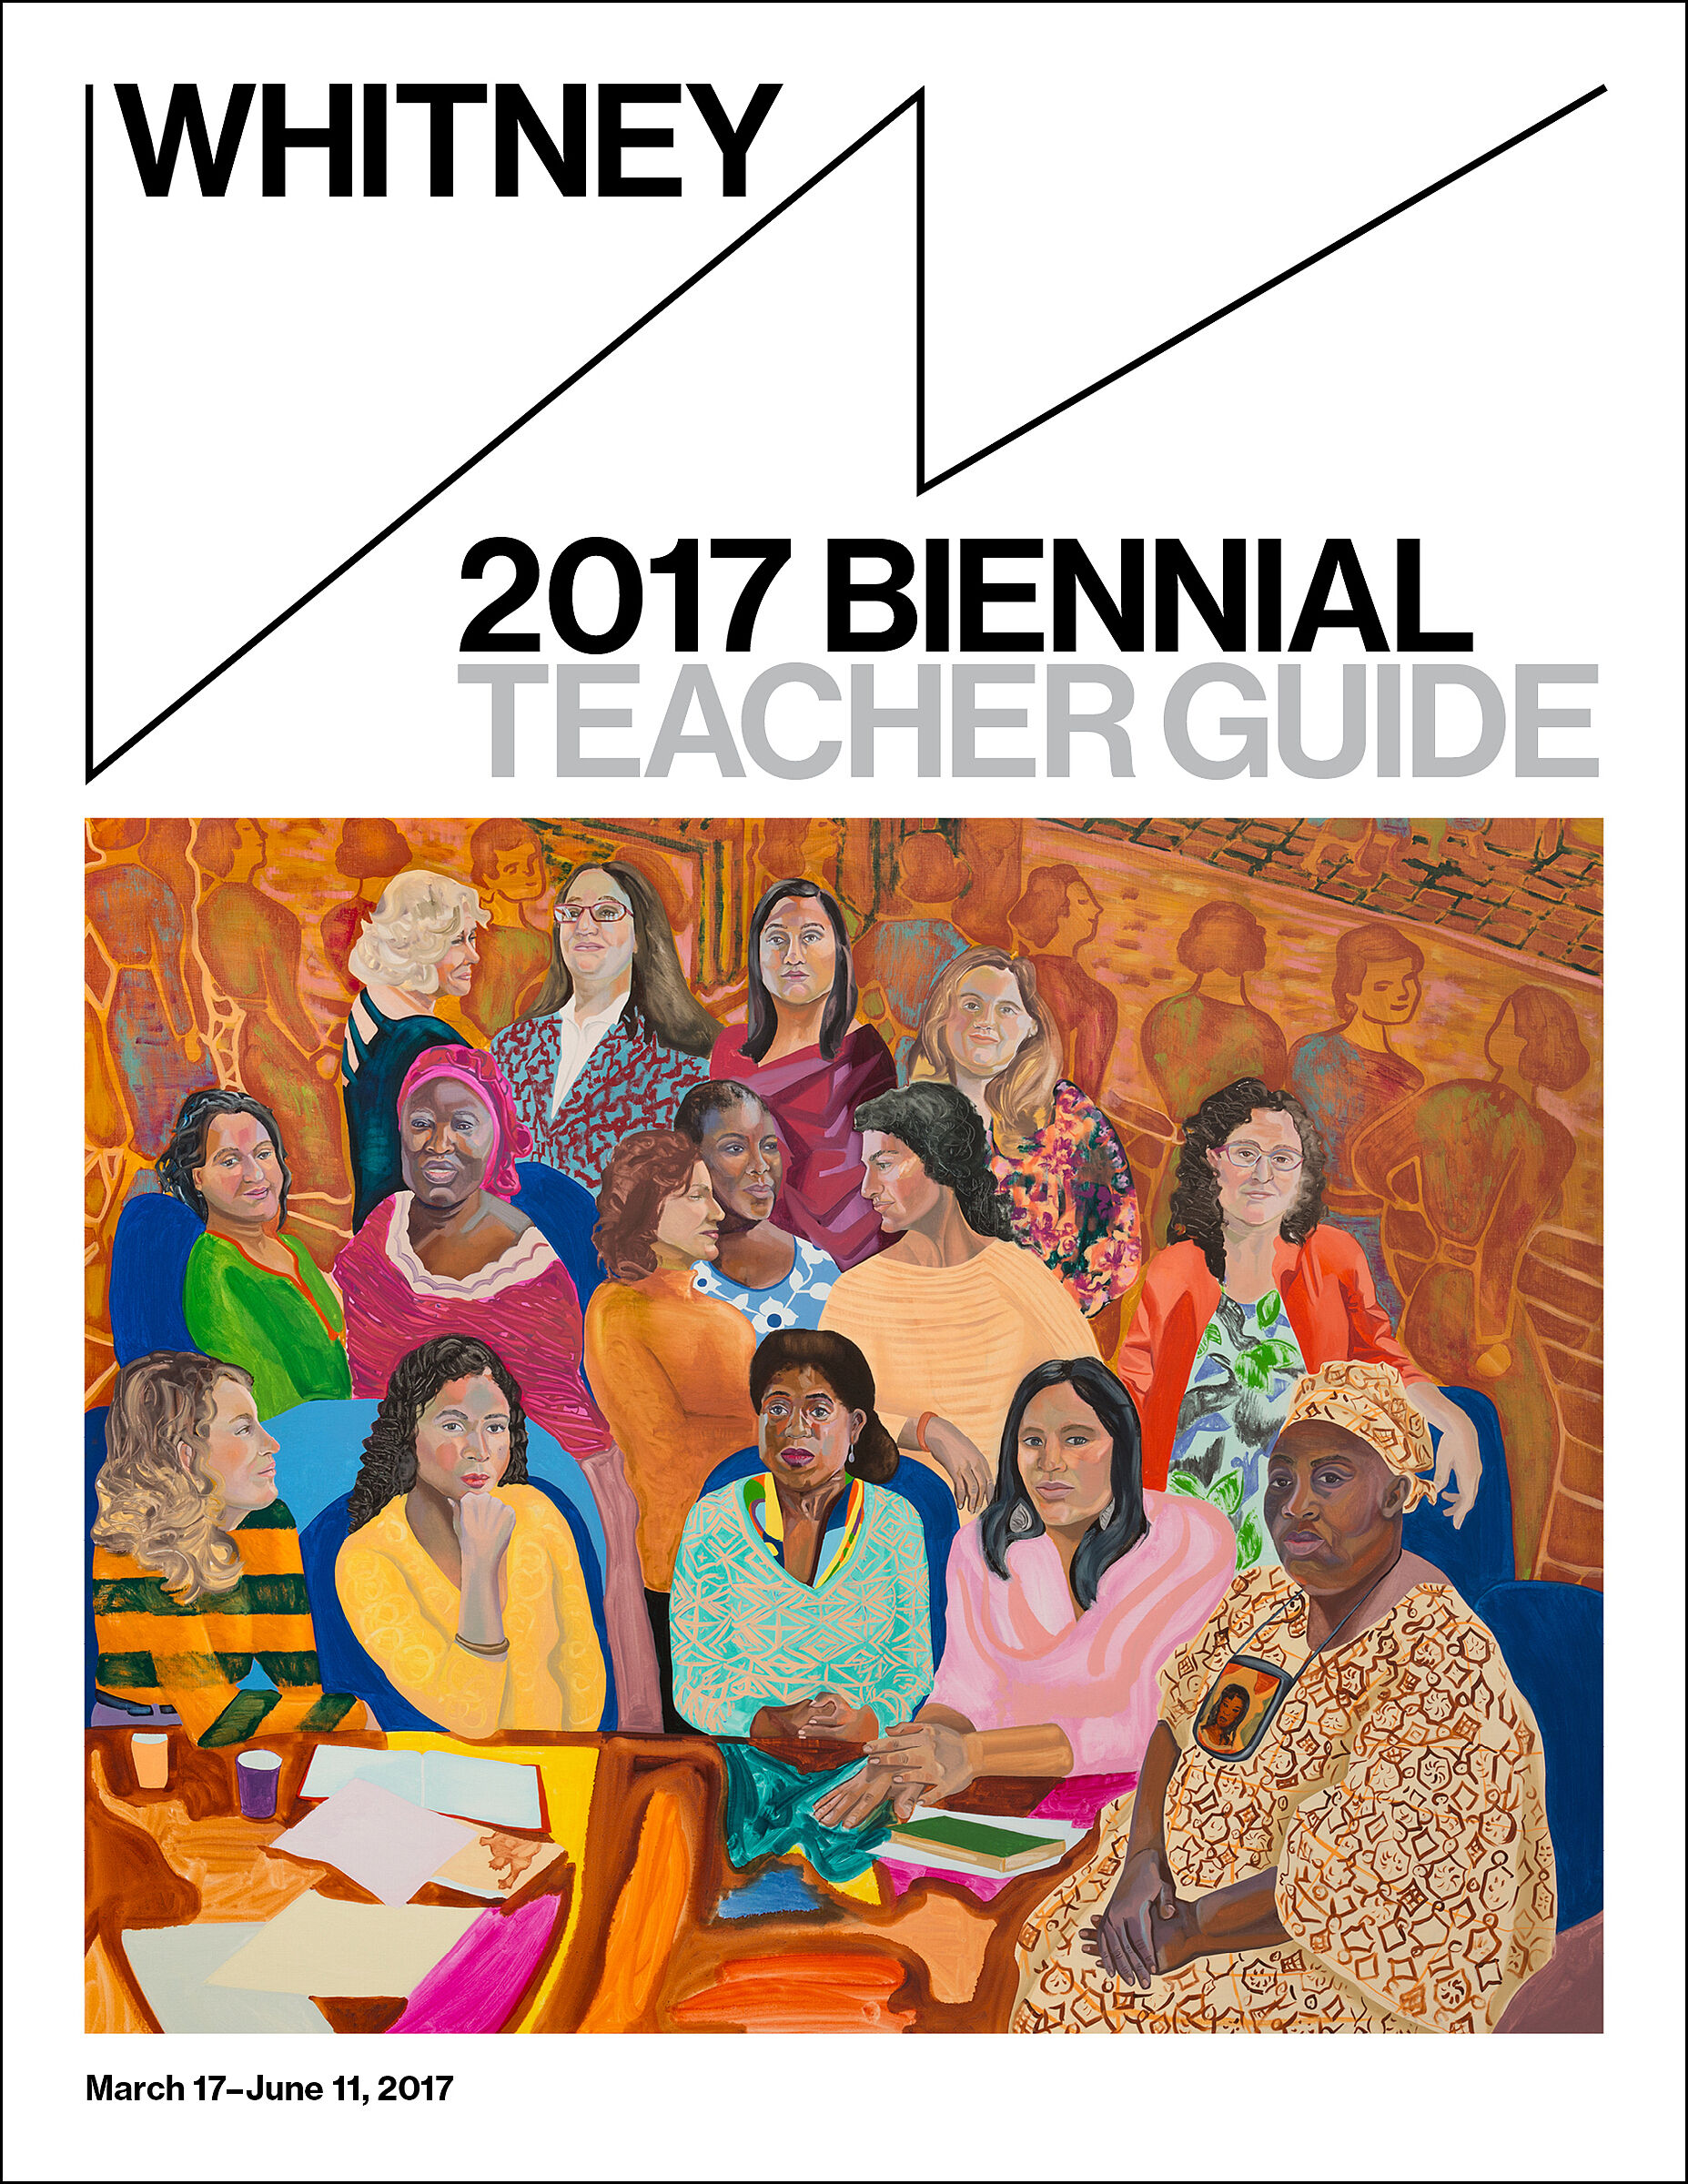 Biennial 2017 Teacher Guide cover.